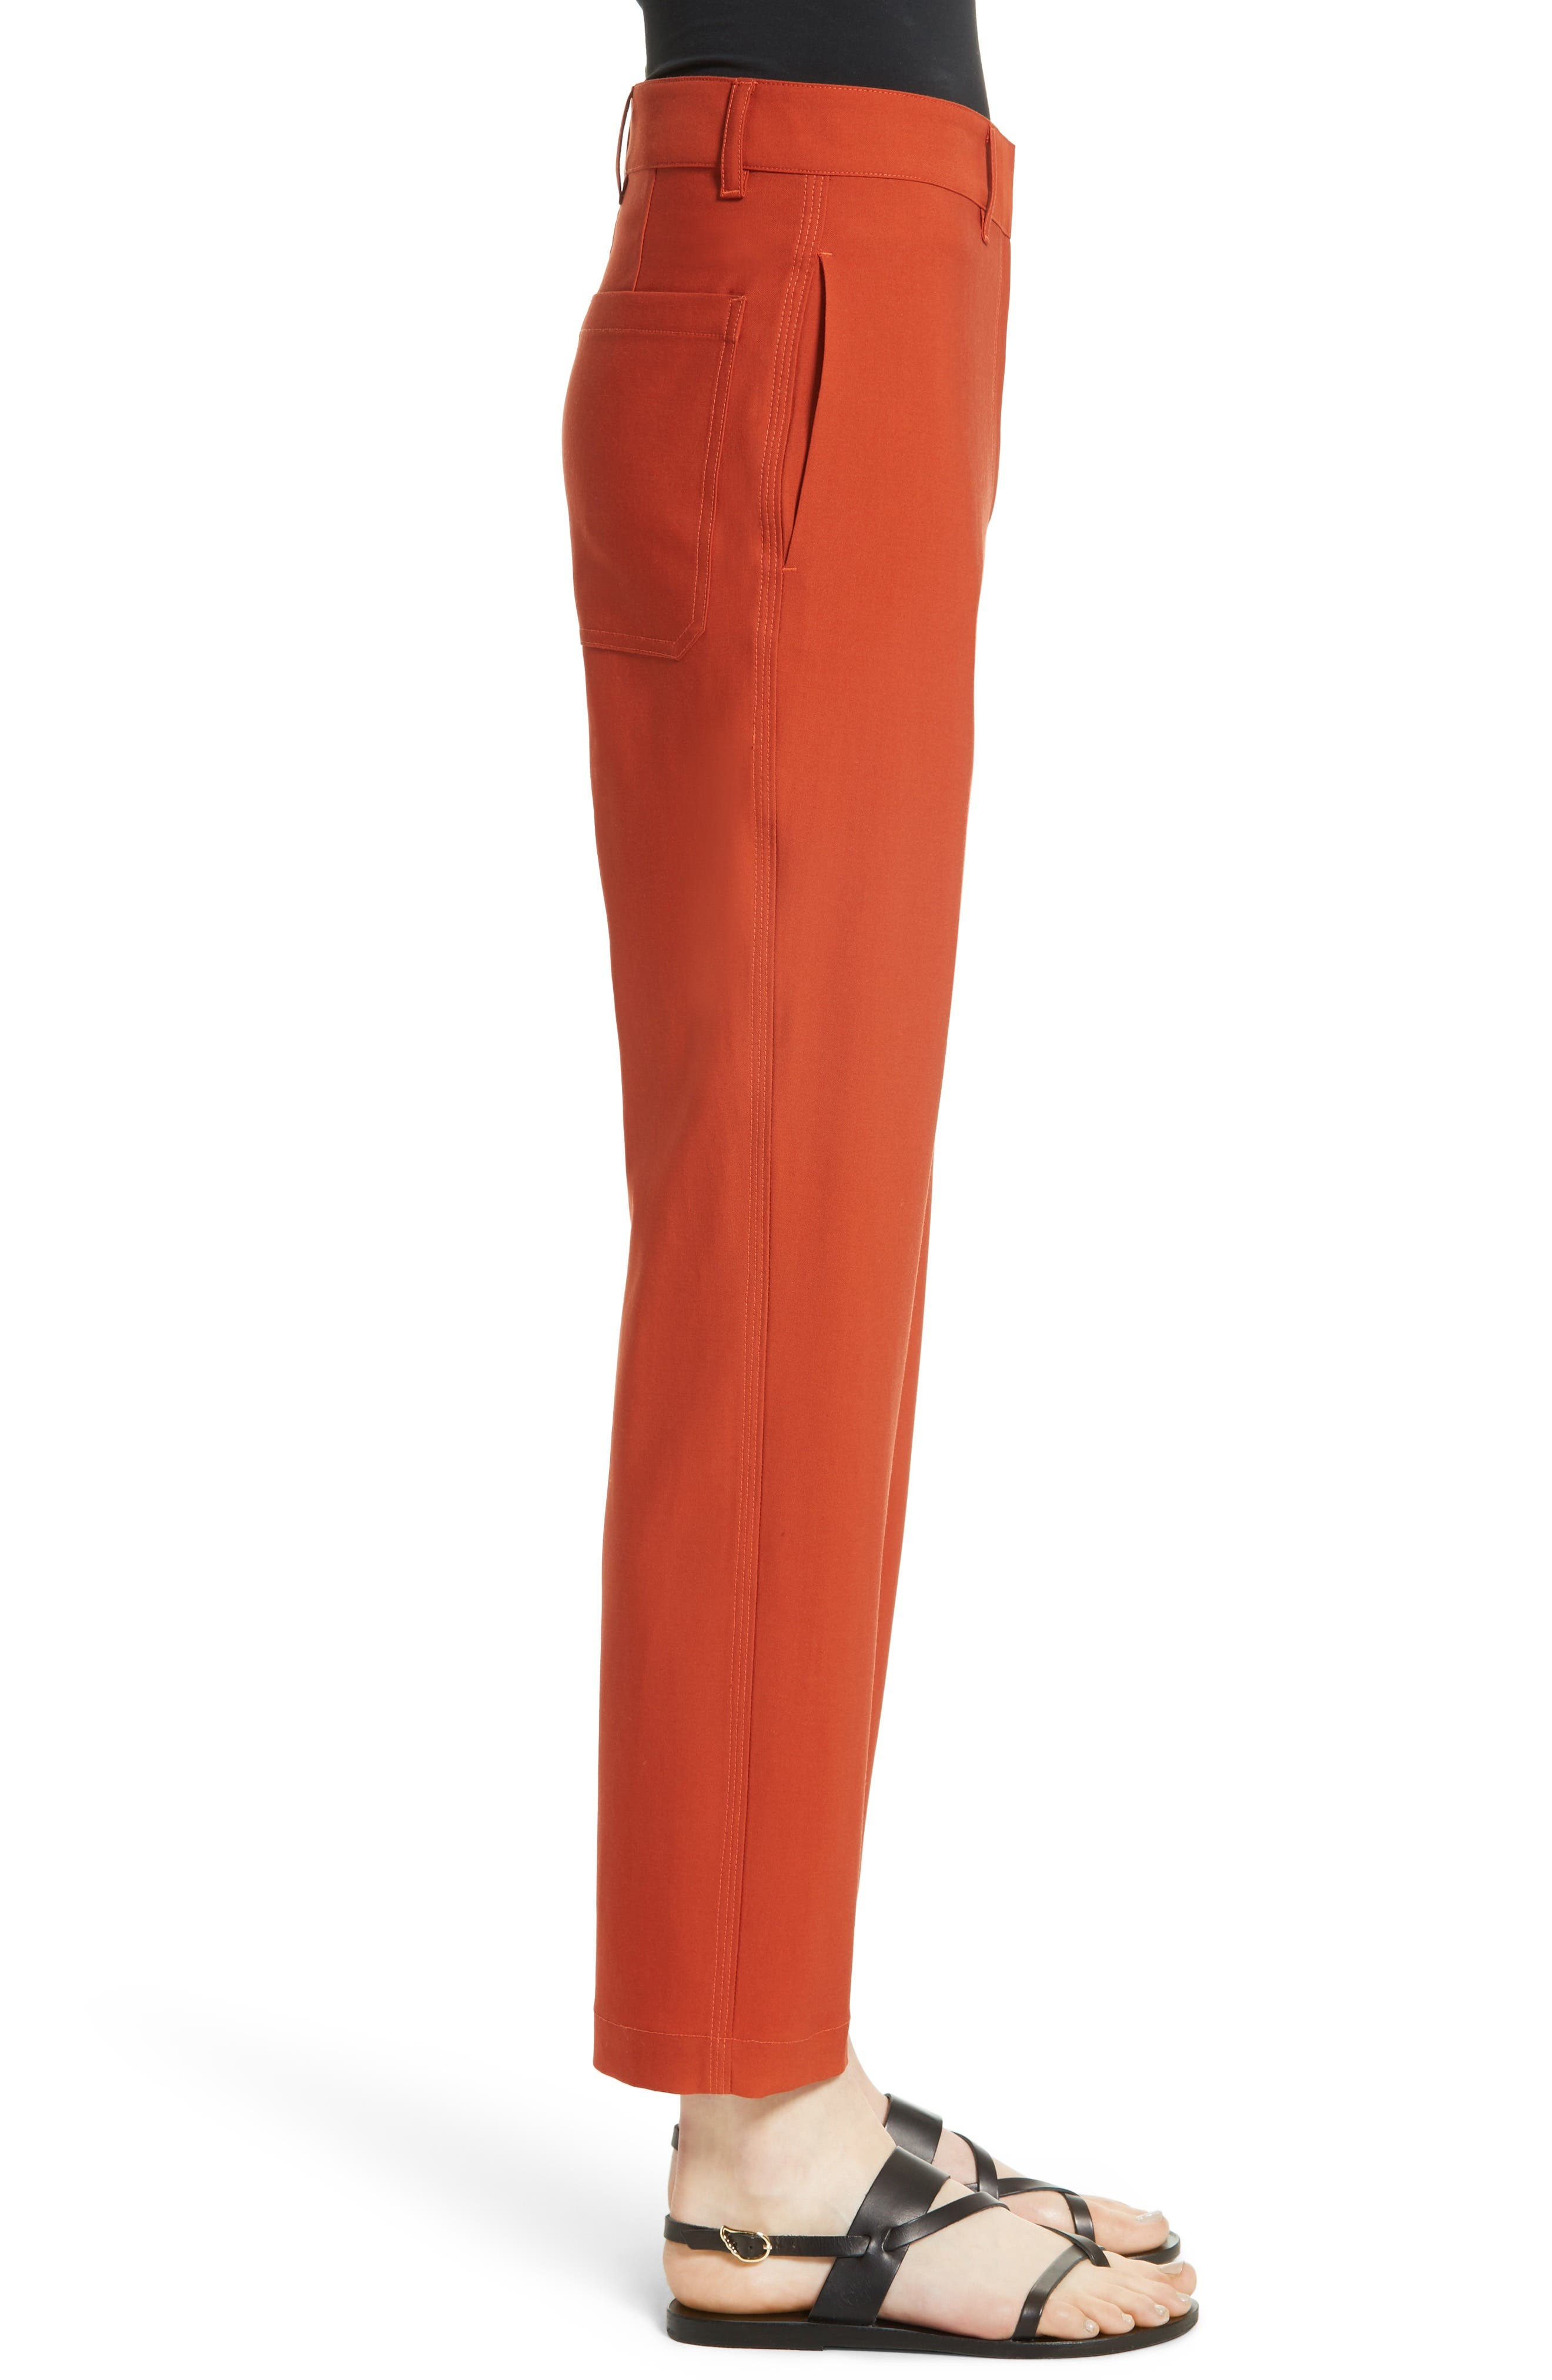 Thorelle B New Stretch Wool Pants,                             Alternate thumbnail 3, color,                             Dark Marmalade